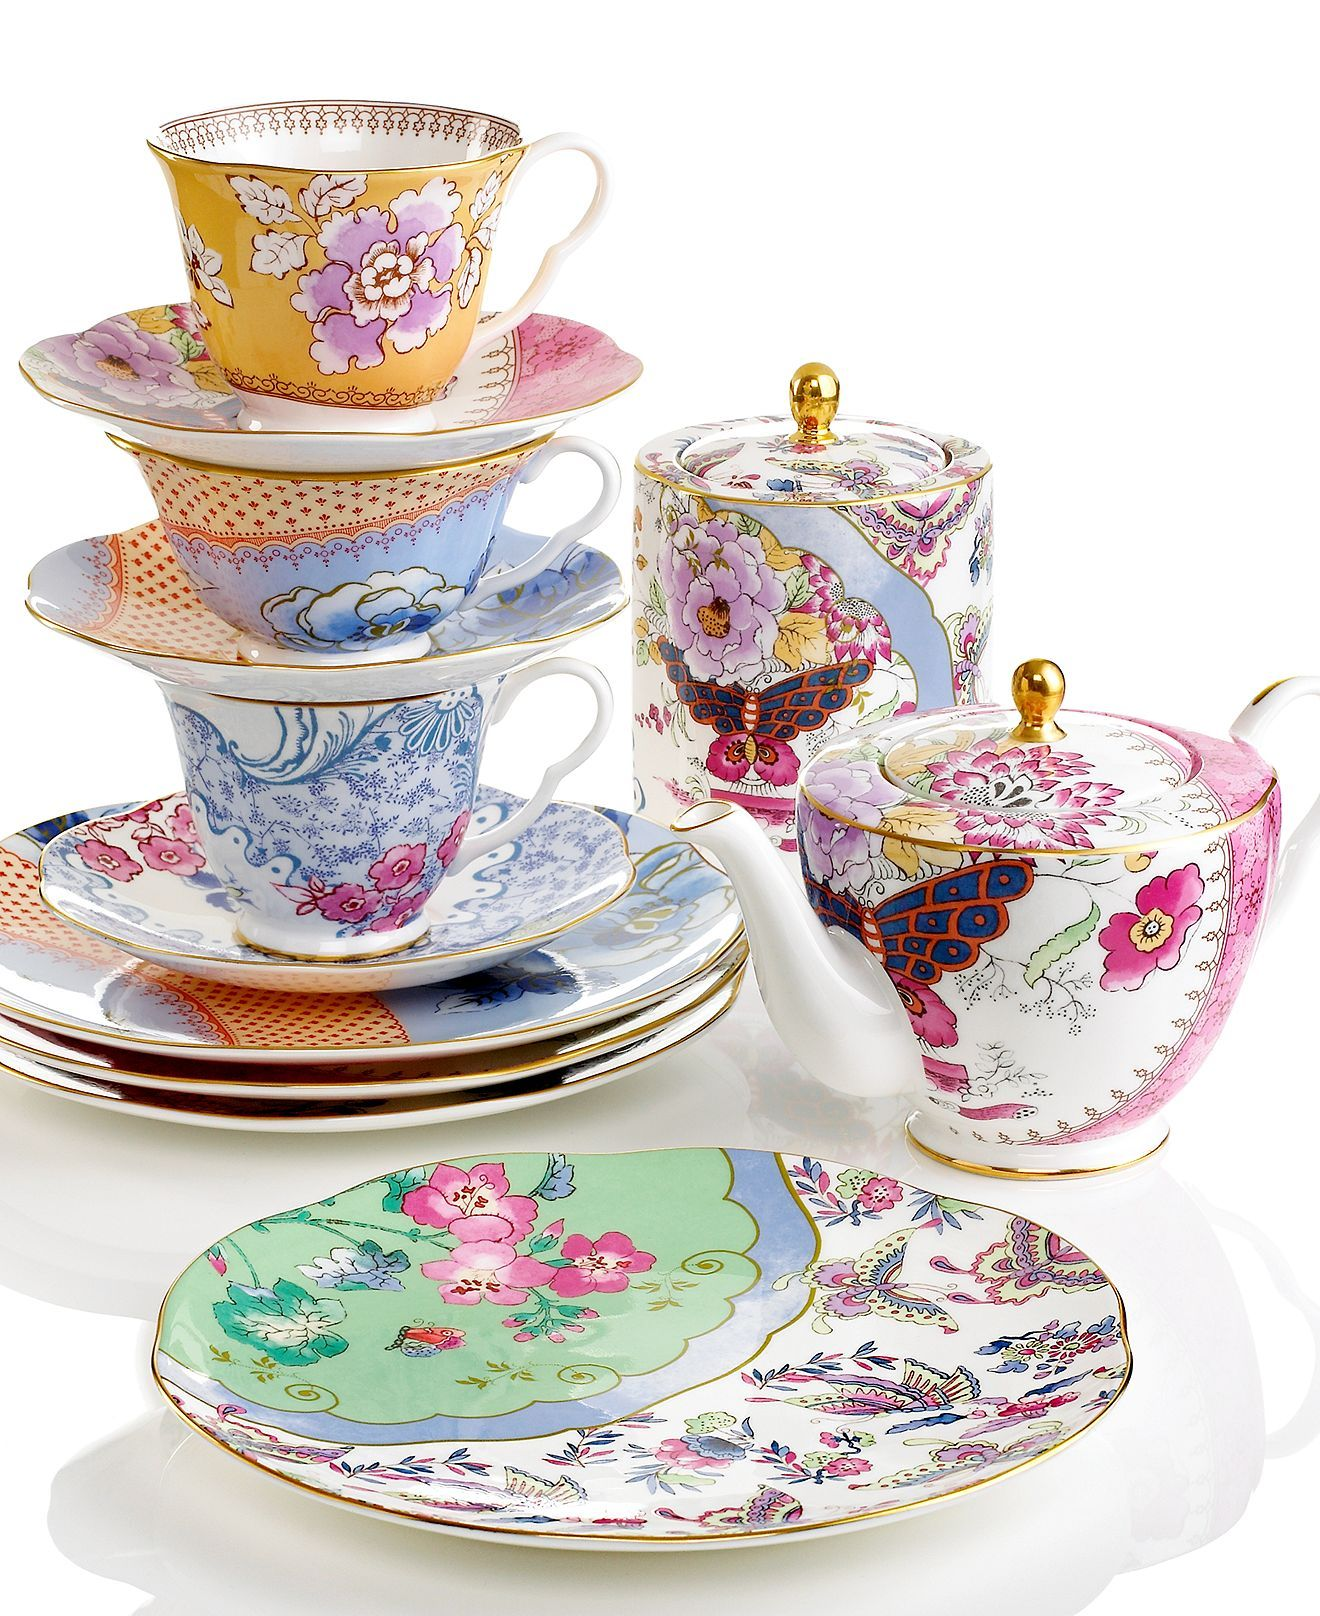 We love the Shabby Chic pattern on this Wedgewood Butterfly Bloom China!